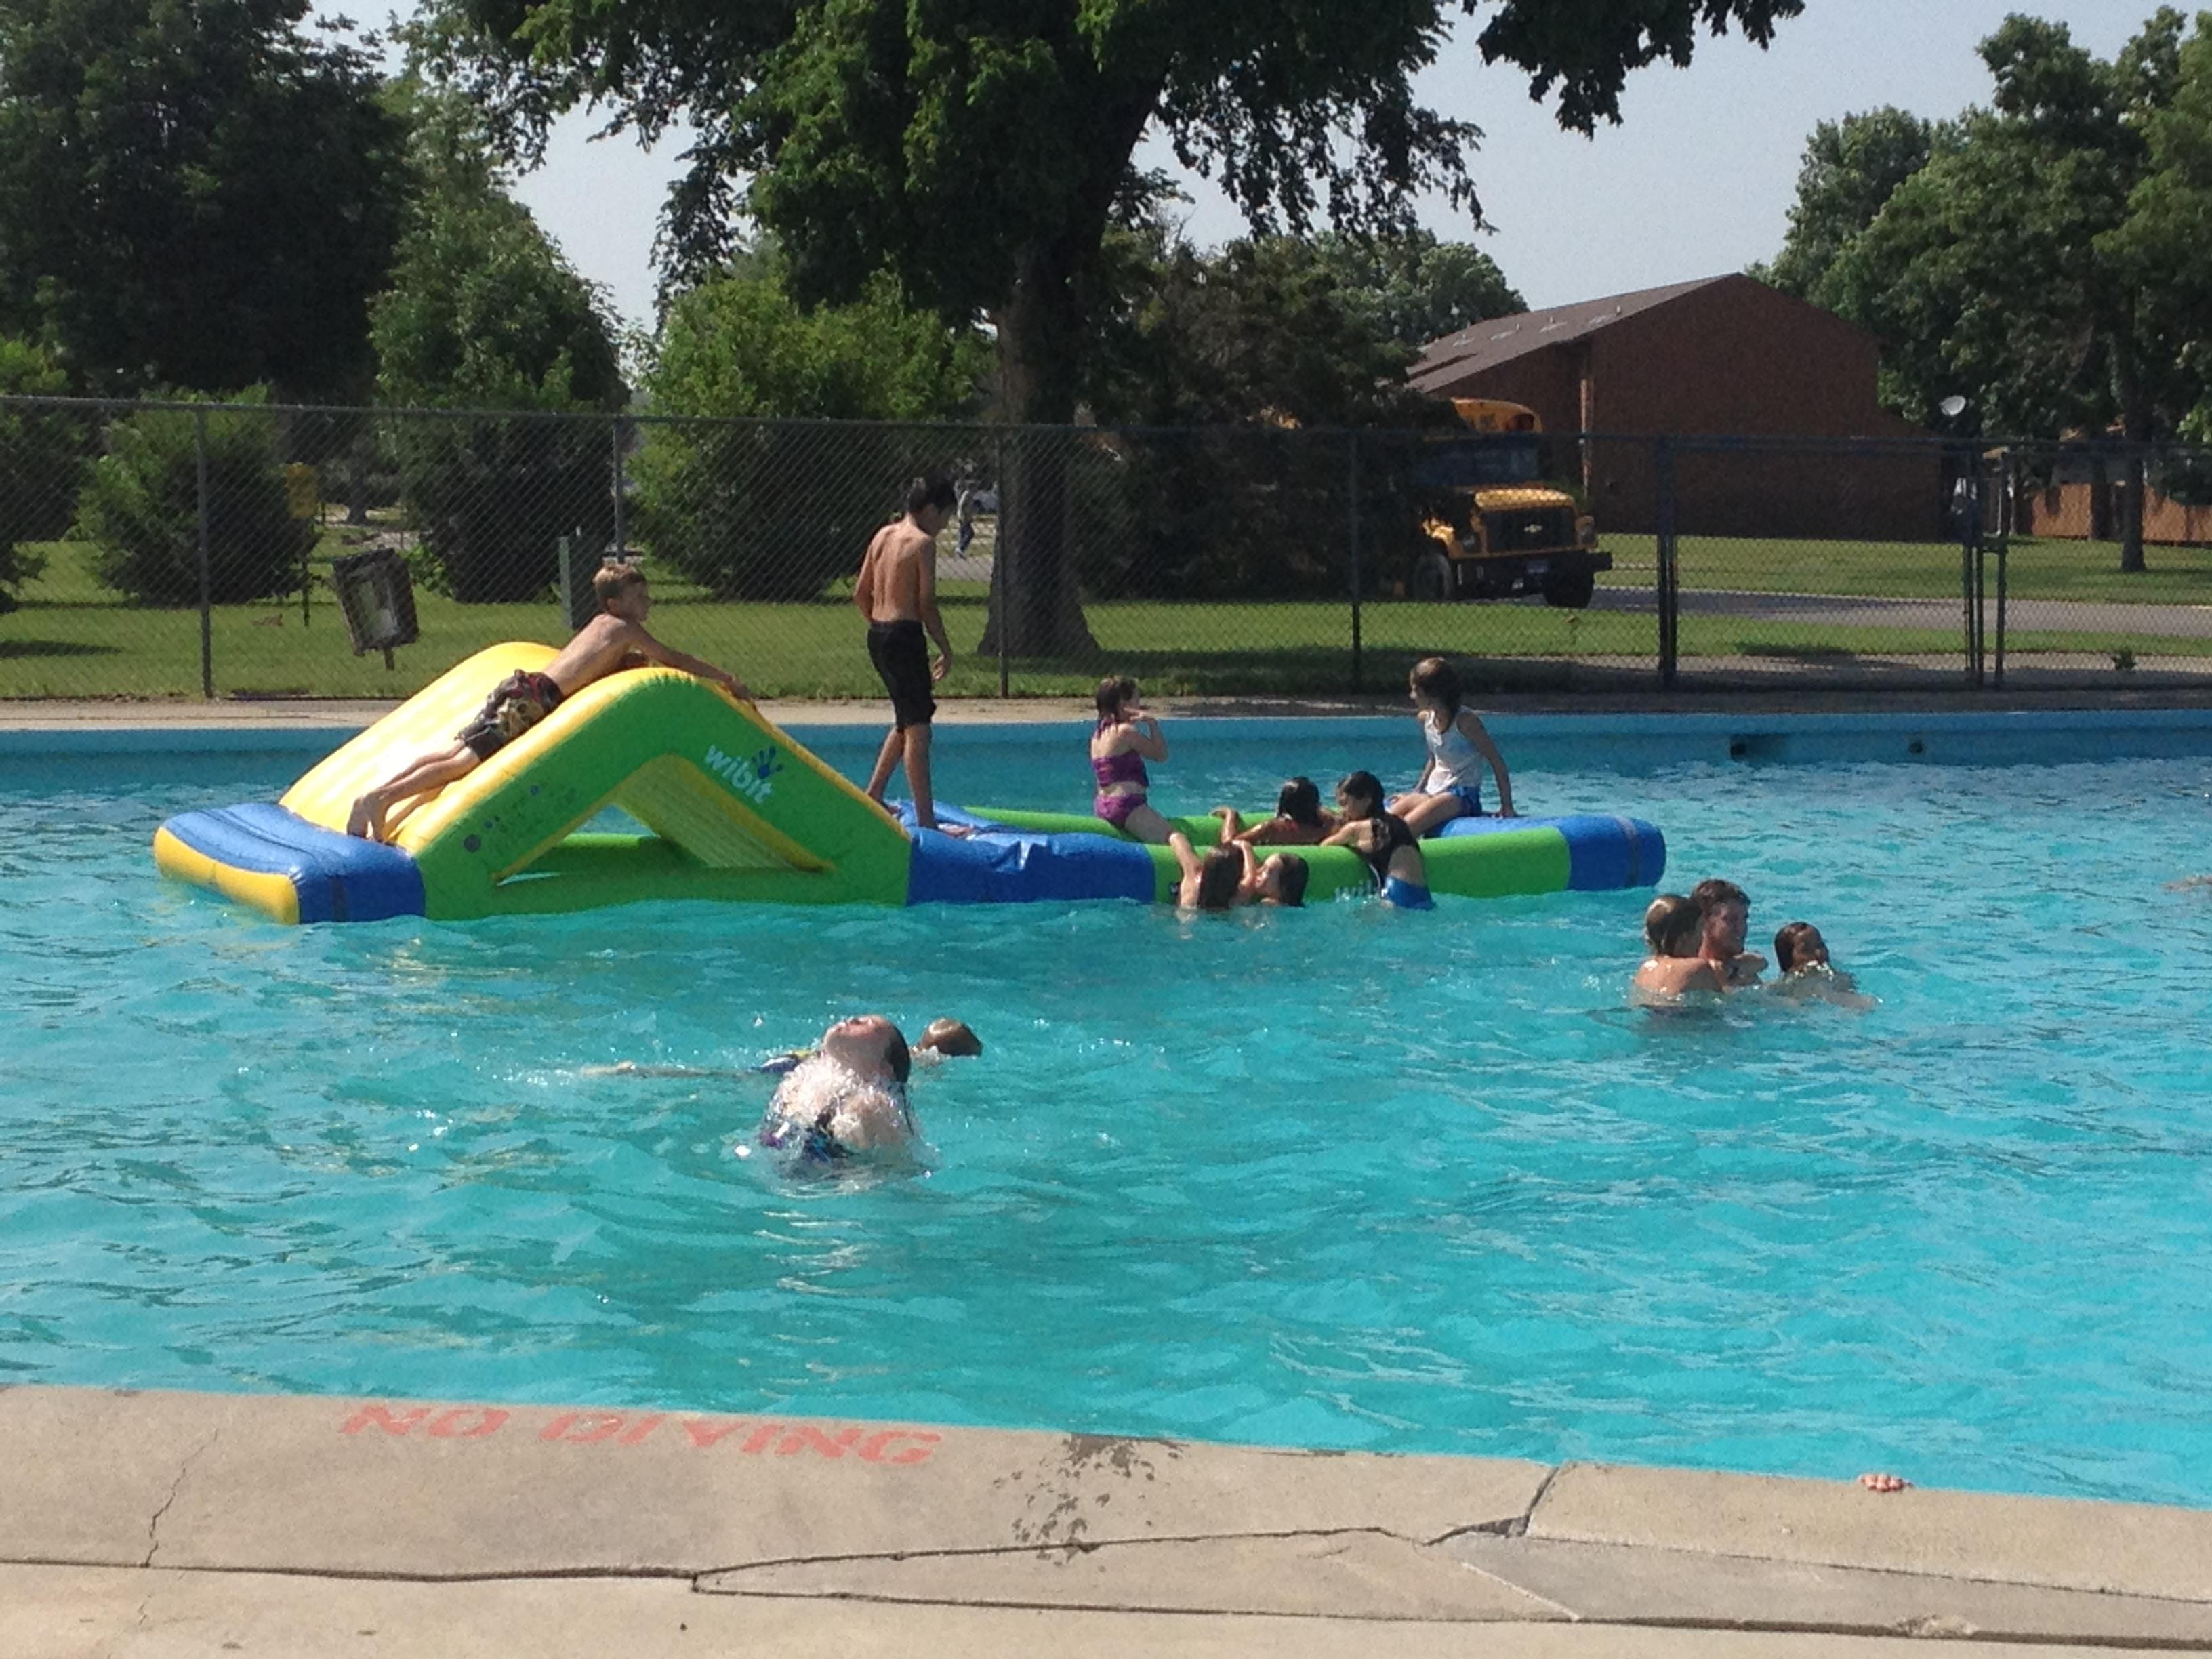 Children Playing In A Pool On Slide